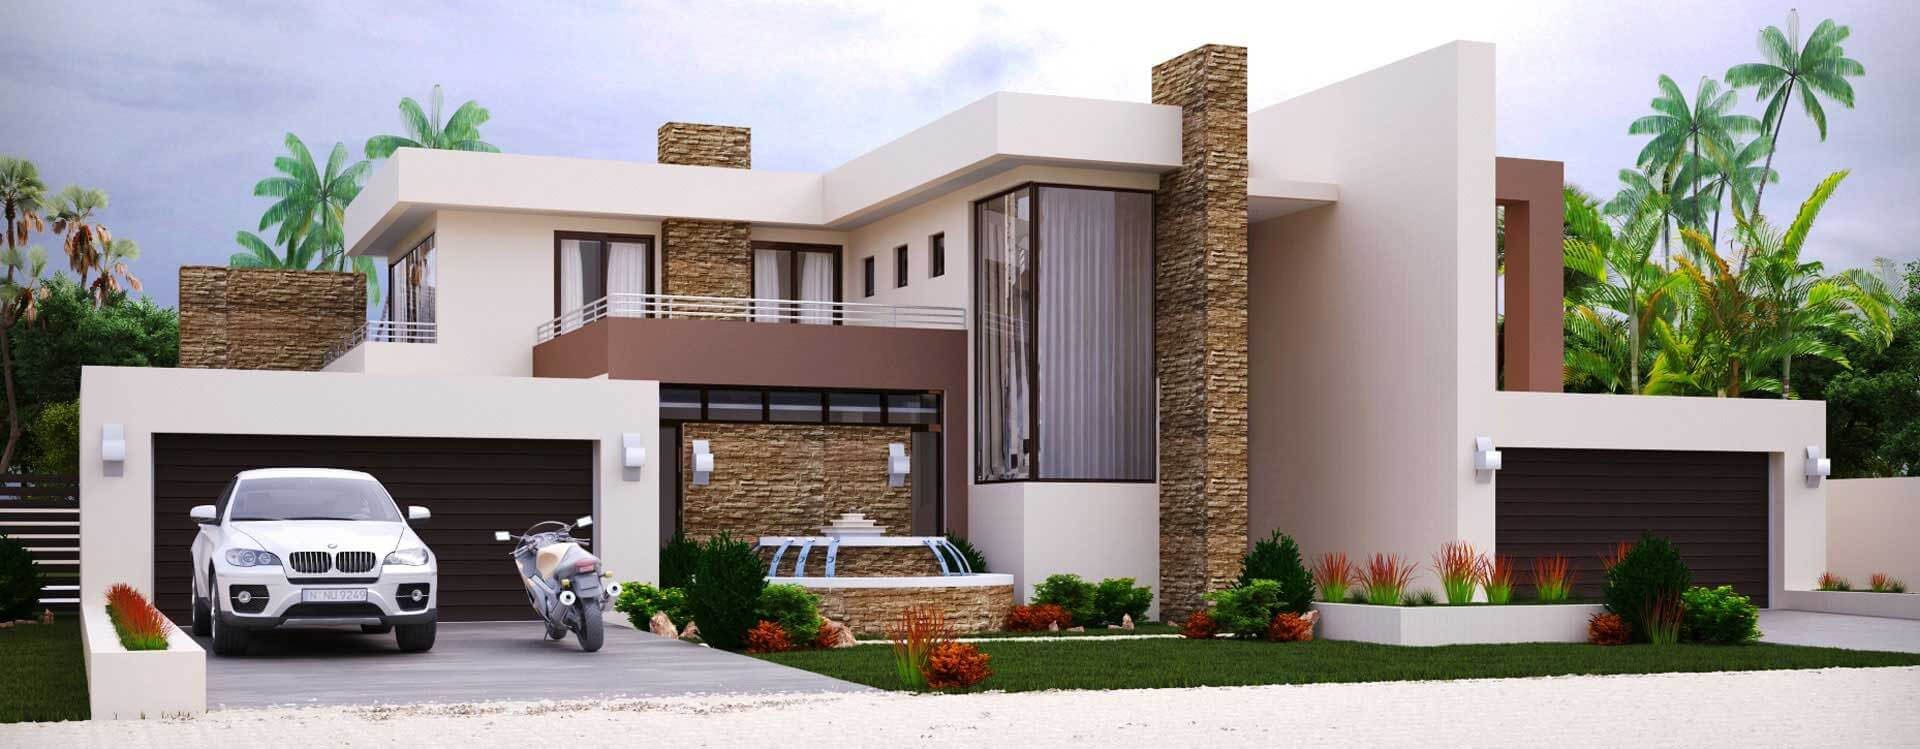 4 Bedroom House Plan 8211 M497d House Plans For Sale House Plans South Africa Modern House Design